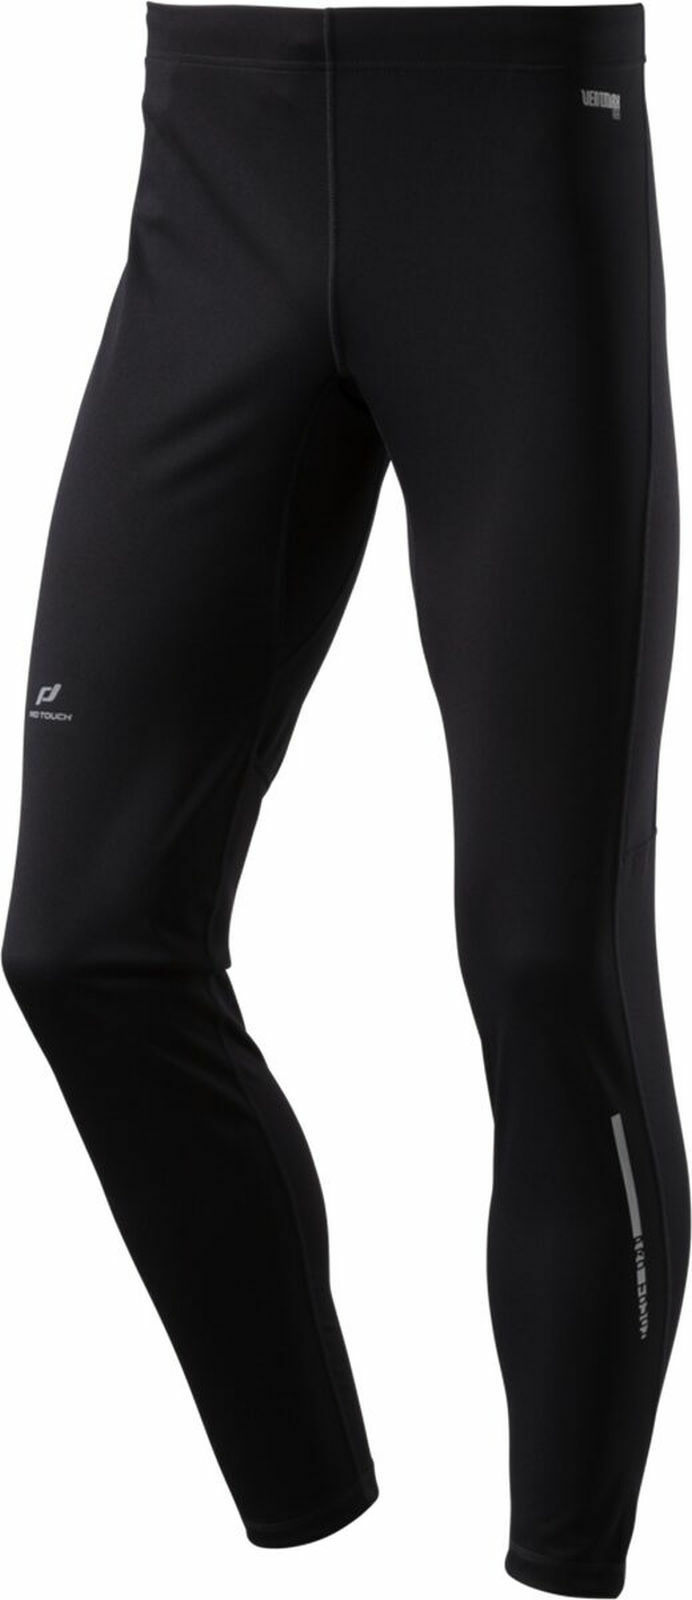 Pro Touch Herren Laufhose Tight lang brushed Windstopper Silo schwarz